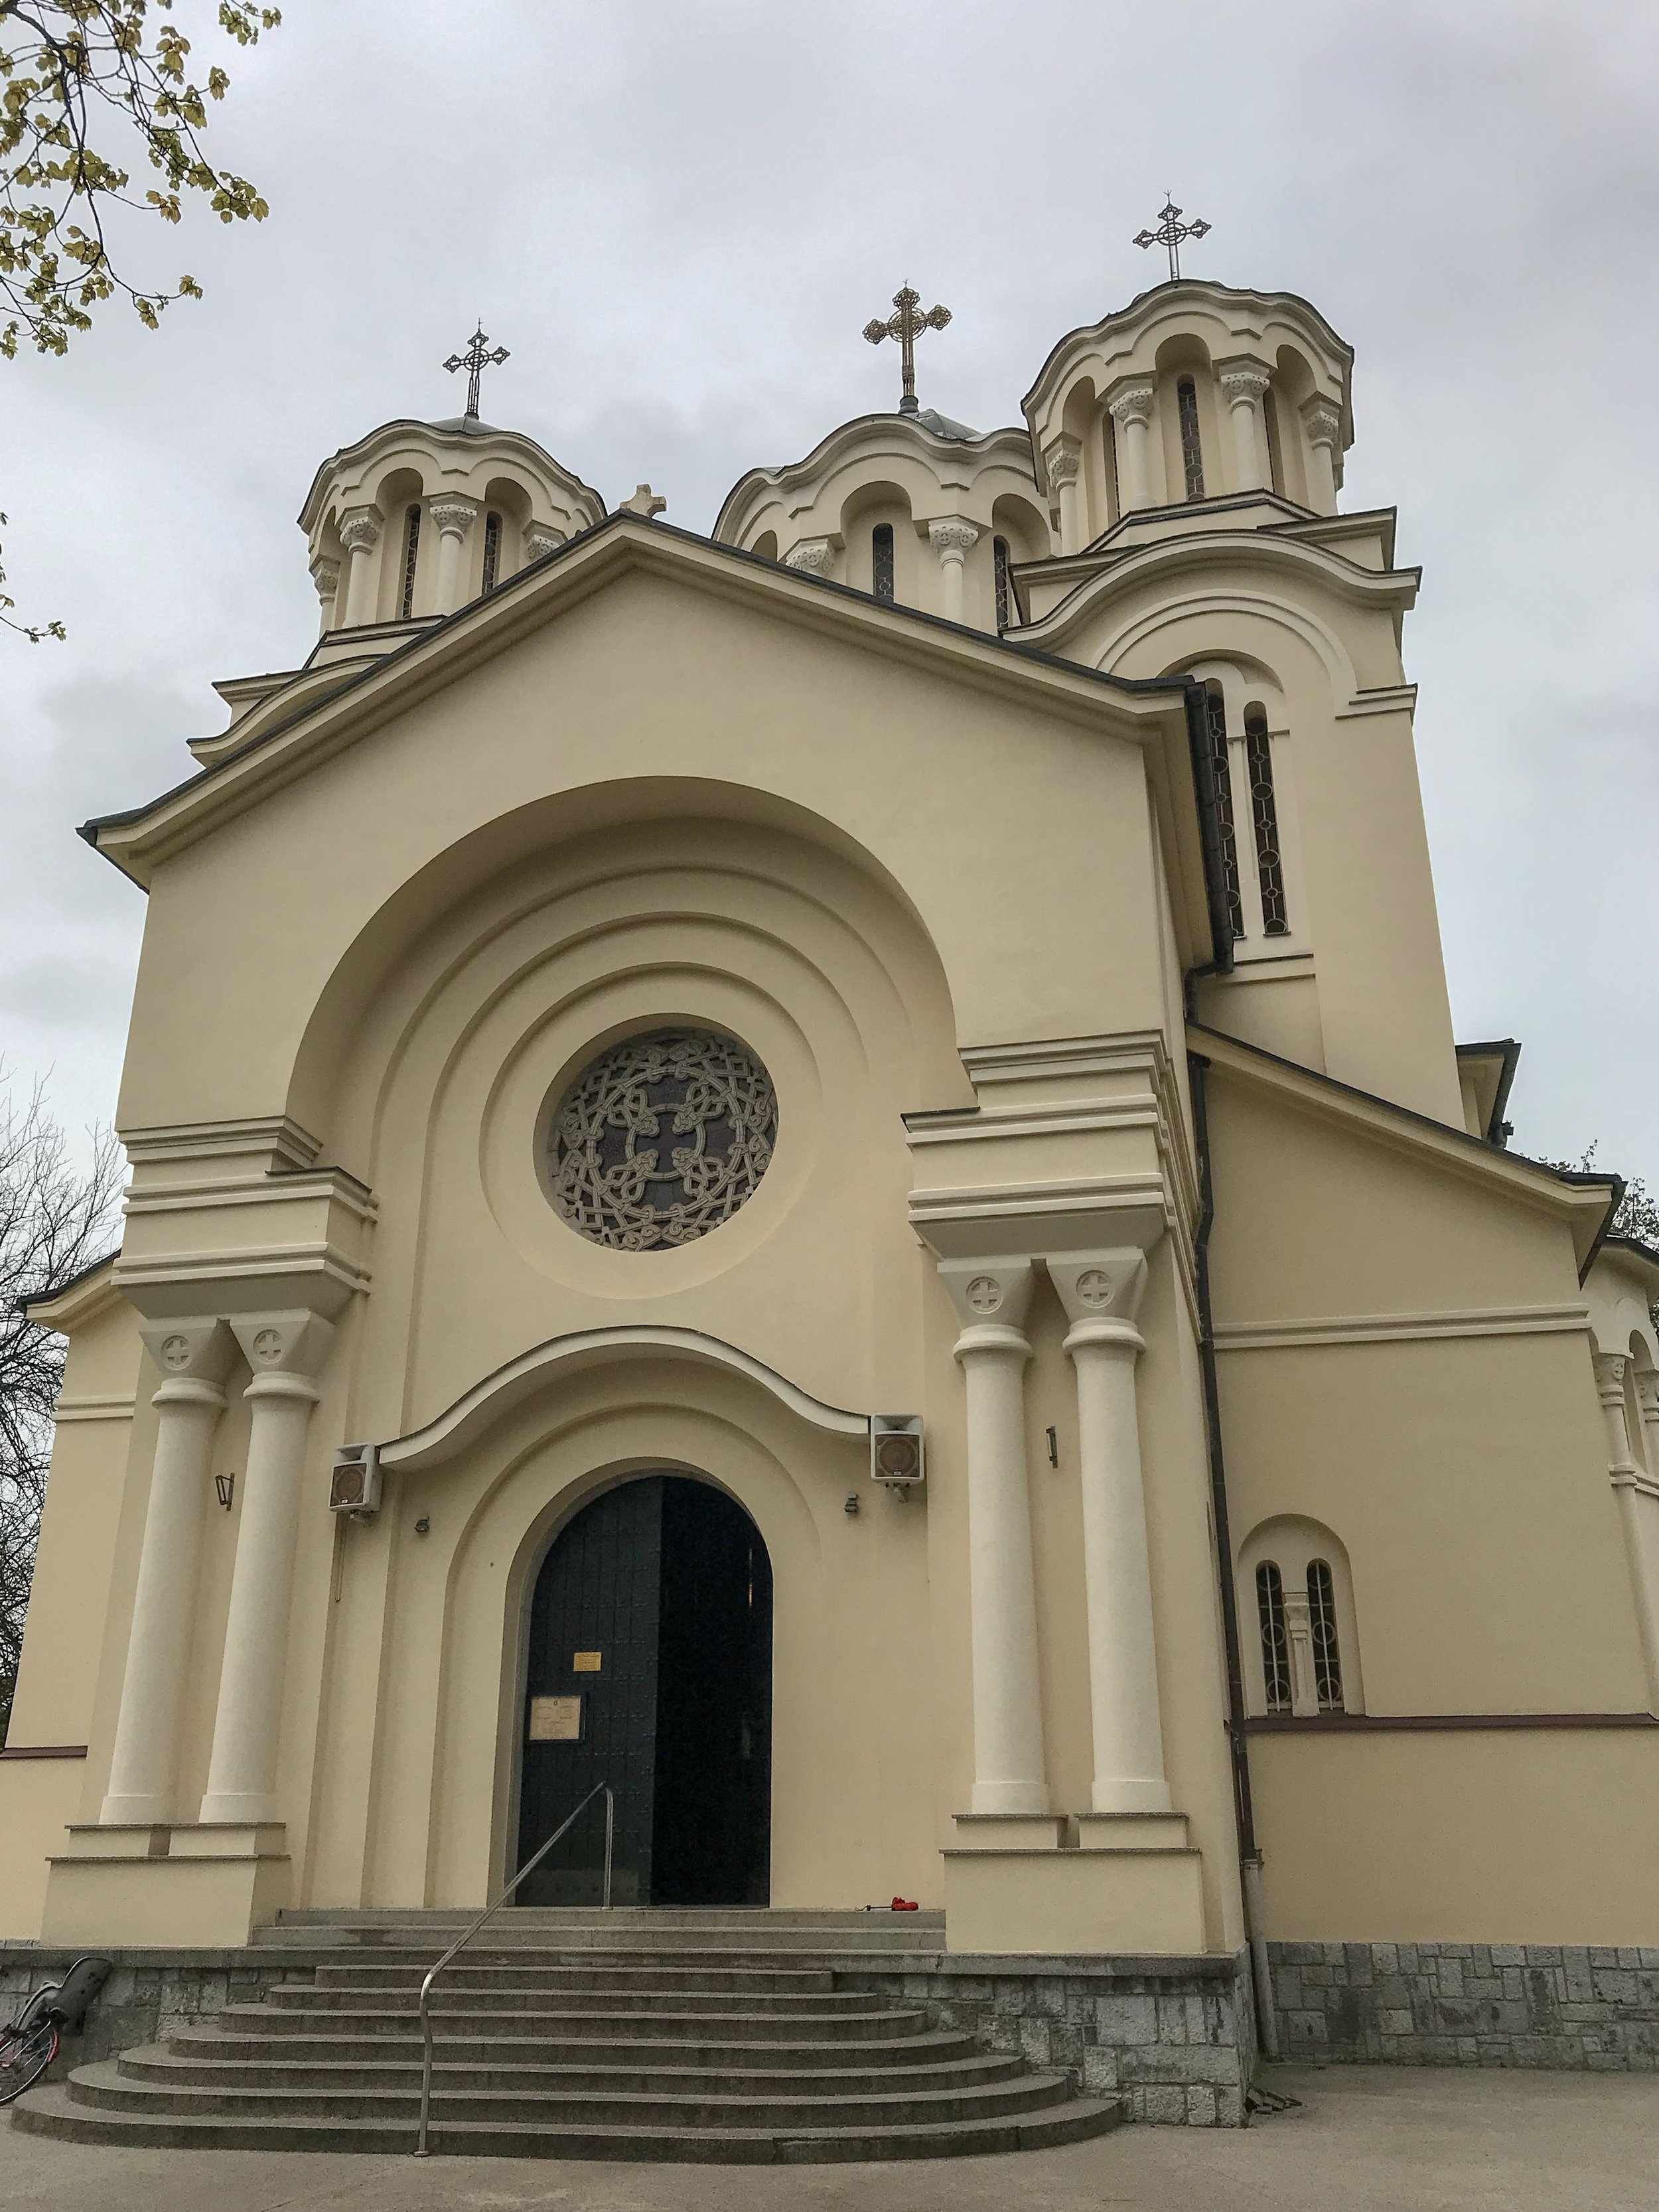 Sts. Cyril and Methodius Orthodox Church